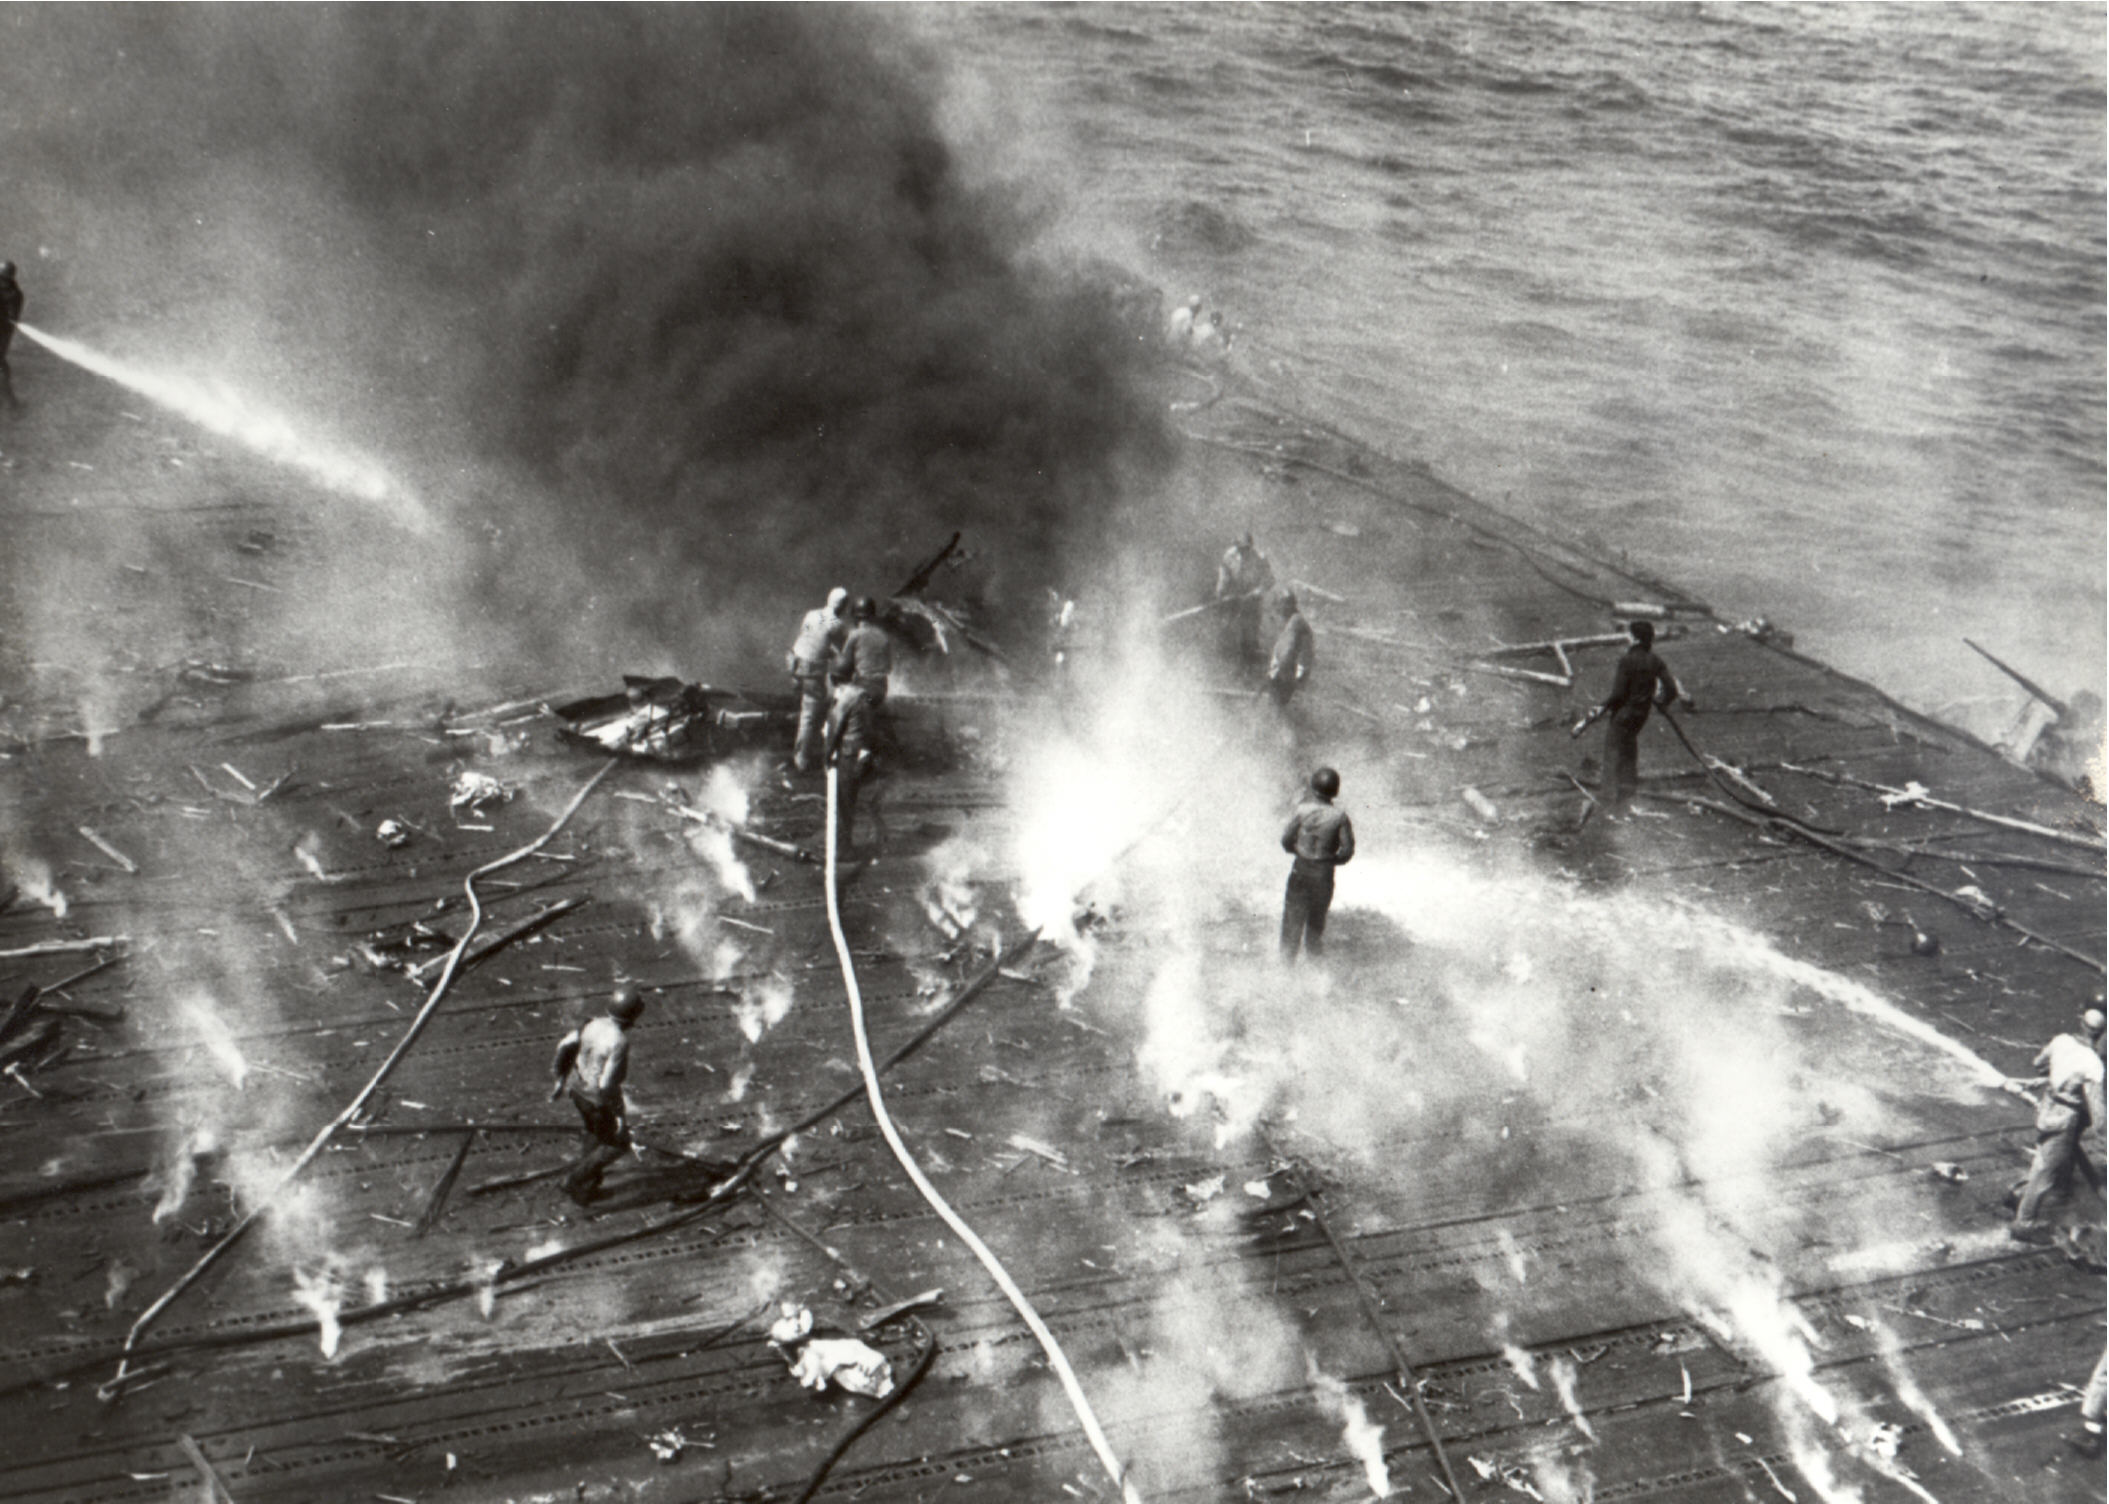 Midway. Note the sailor in the foreground attempting to repair the wooden flight deck. The forward arresting wires can also be seen in the foreground. Date